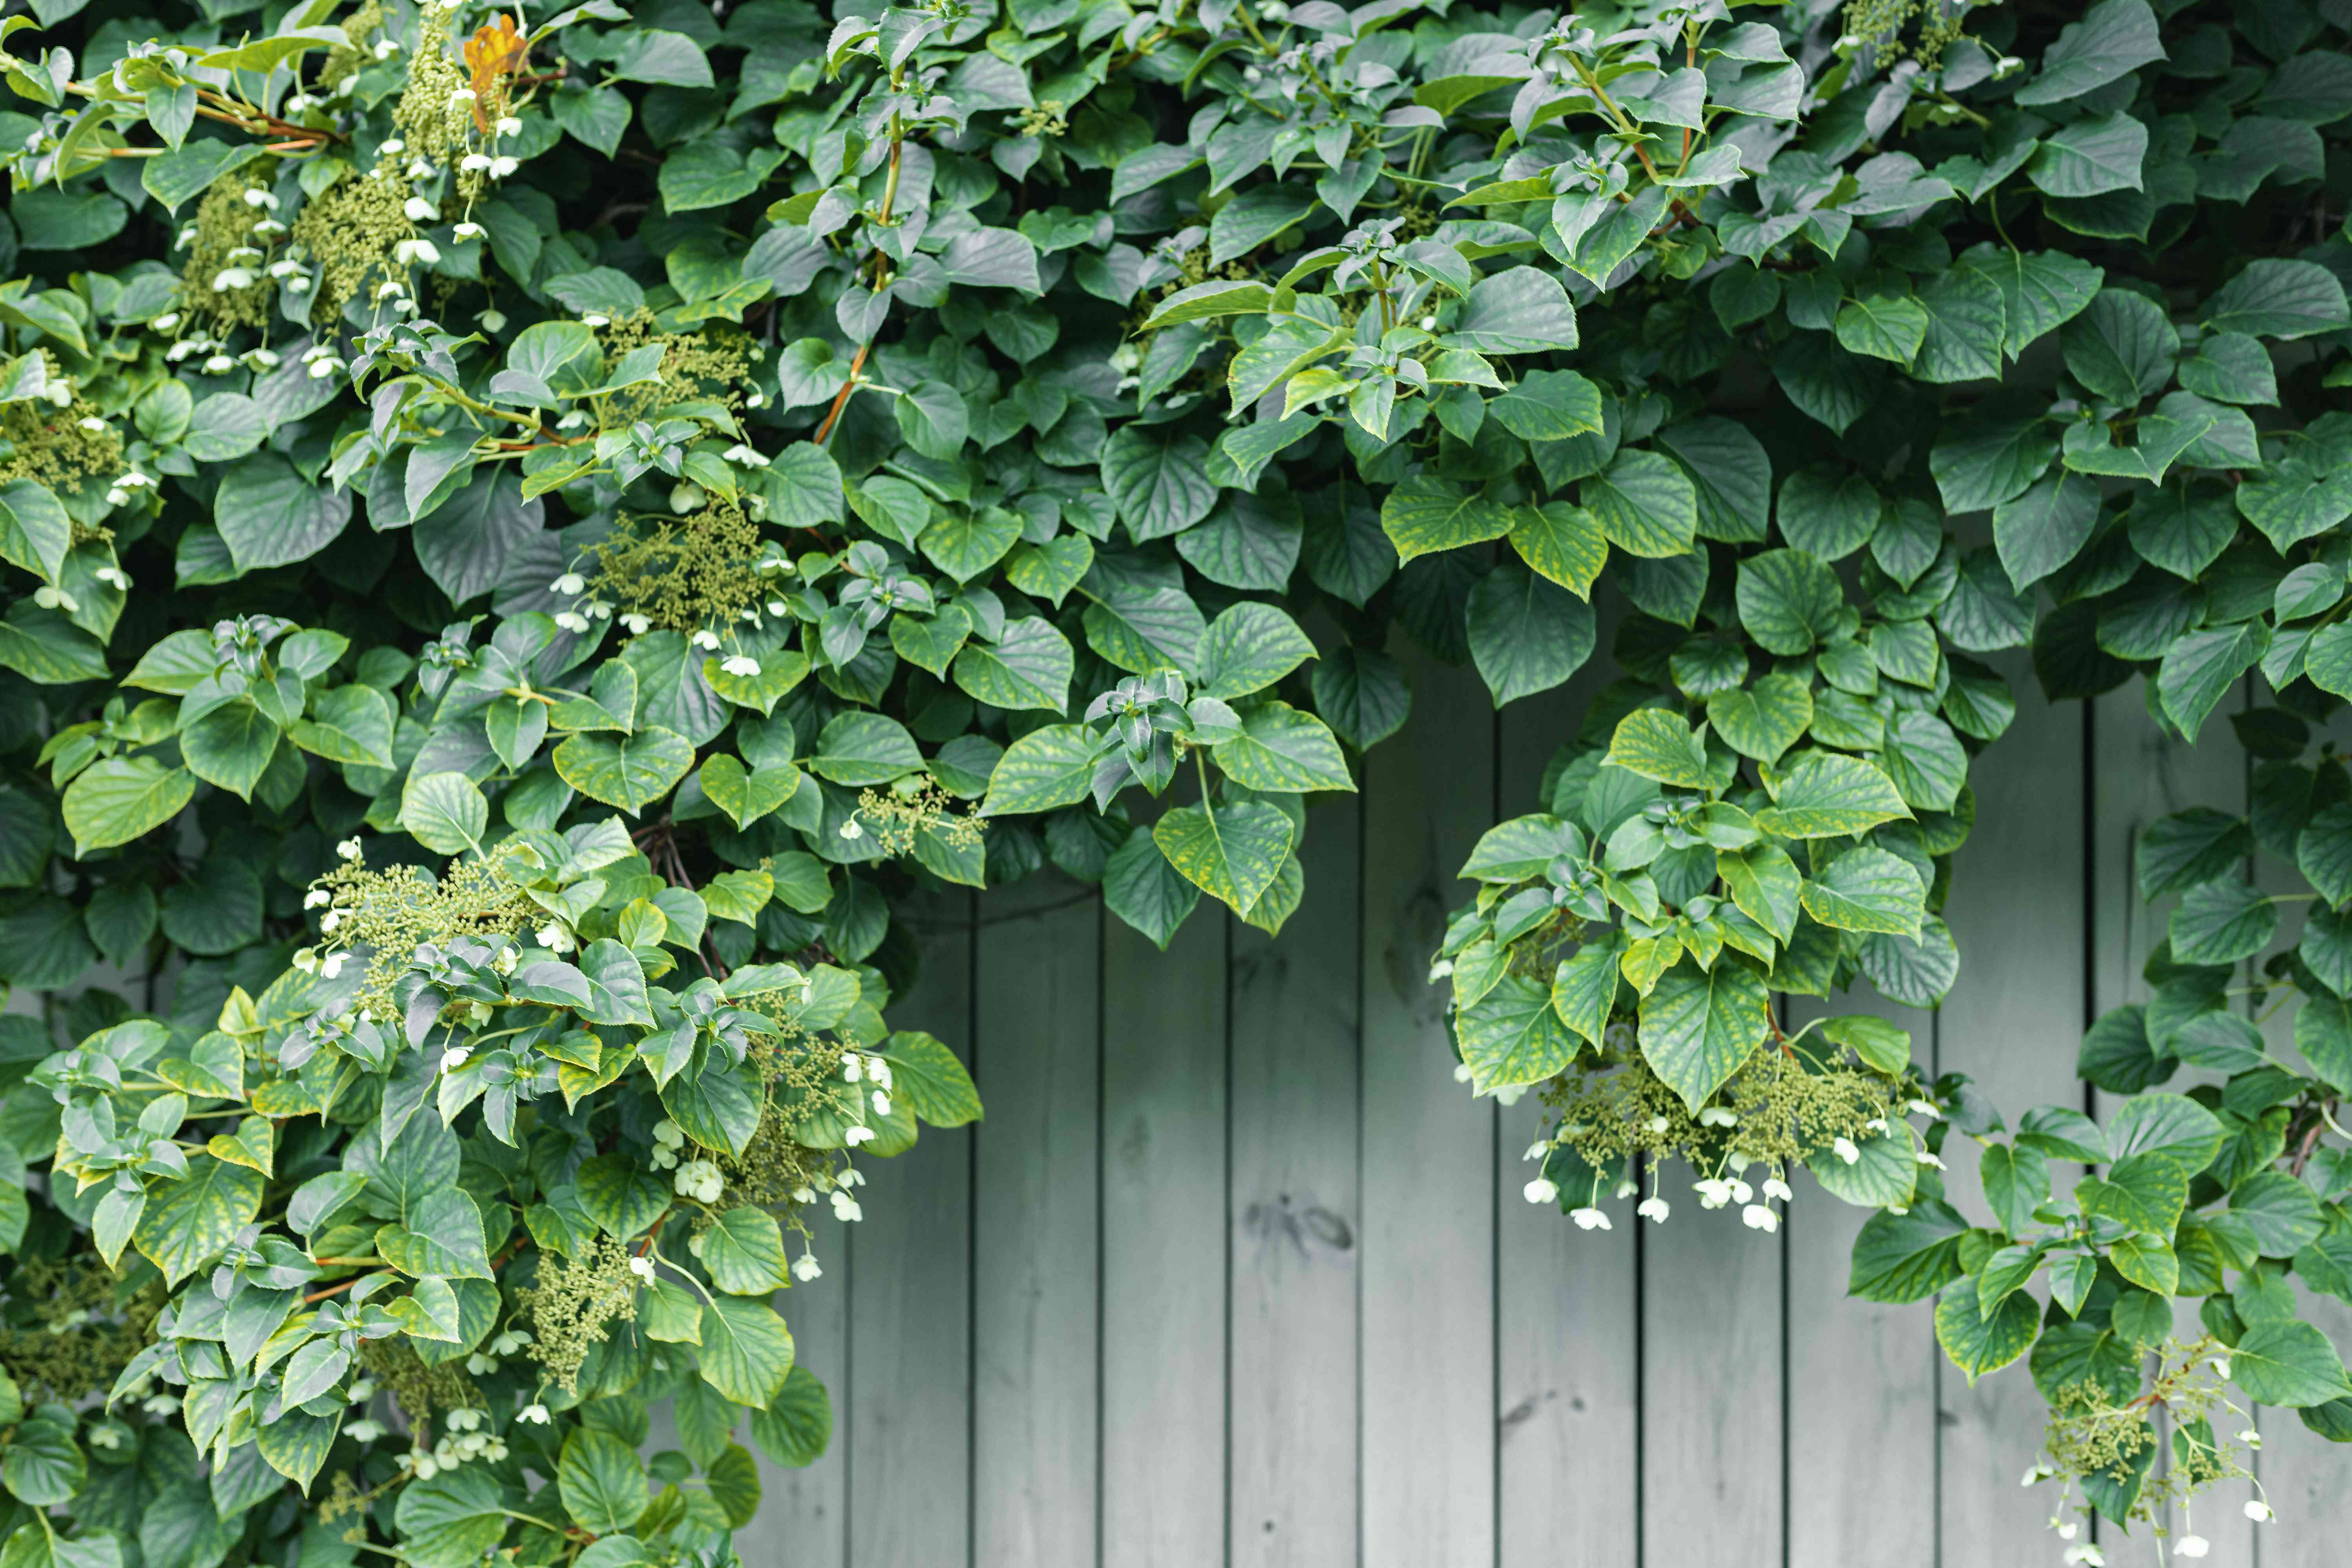 Climbing hydrangea over wooden fence with small white flowers and leaves climbing over